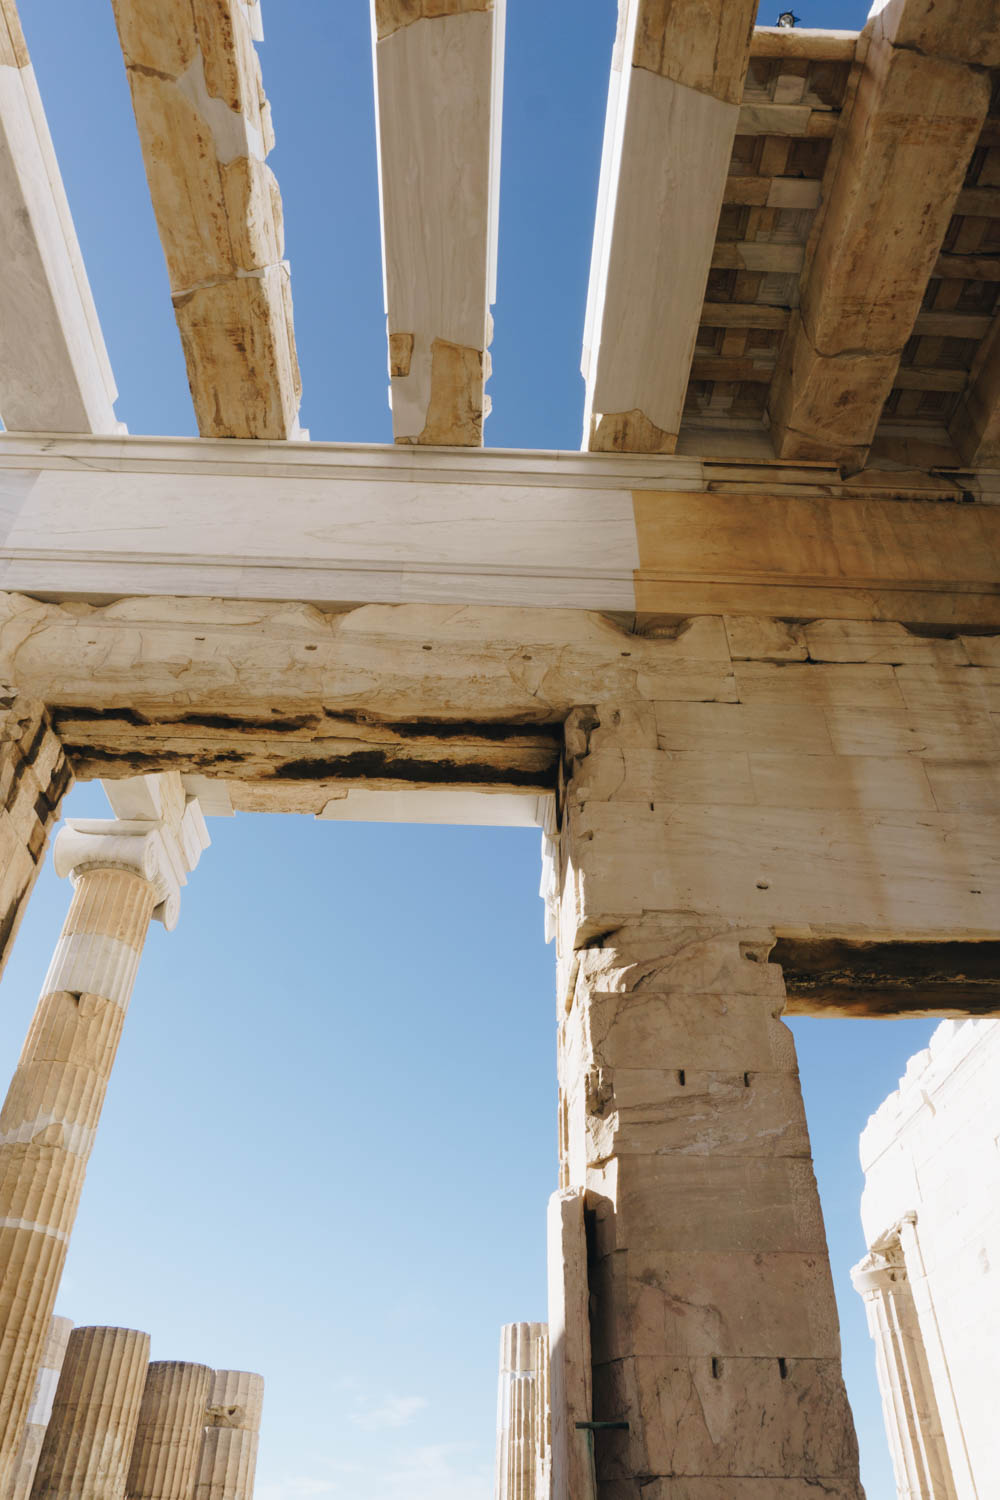 athens greece travel guide acropolis rgdaily blog rebecca goddard